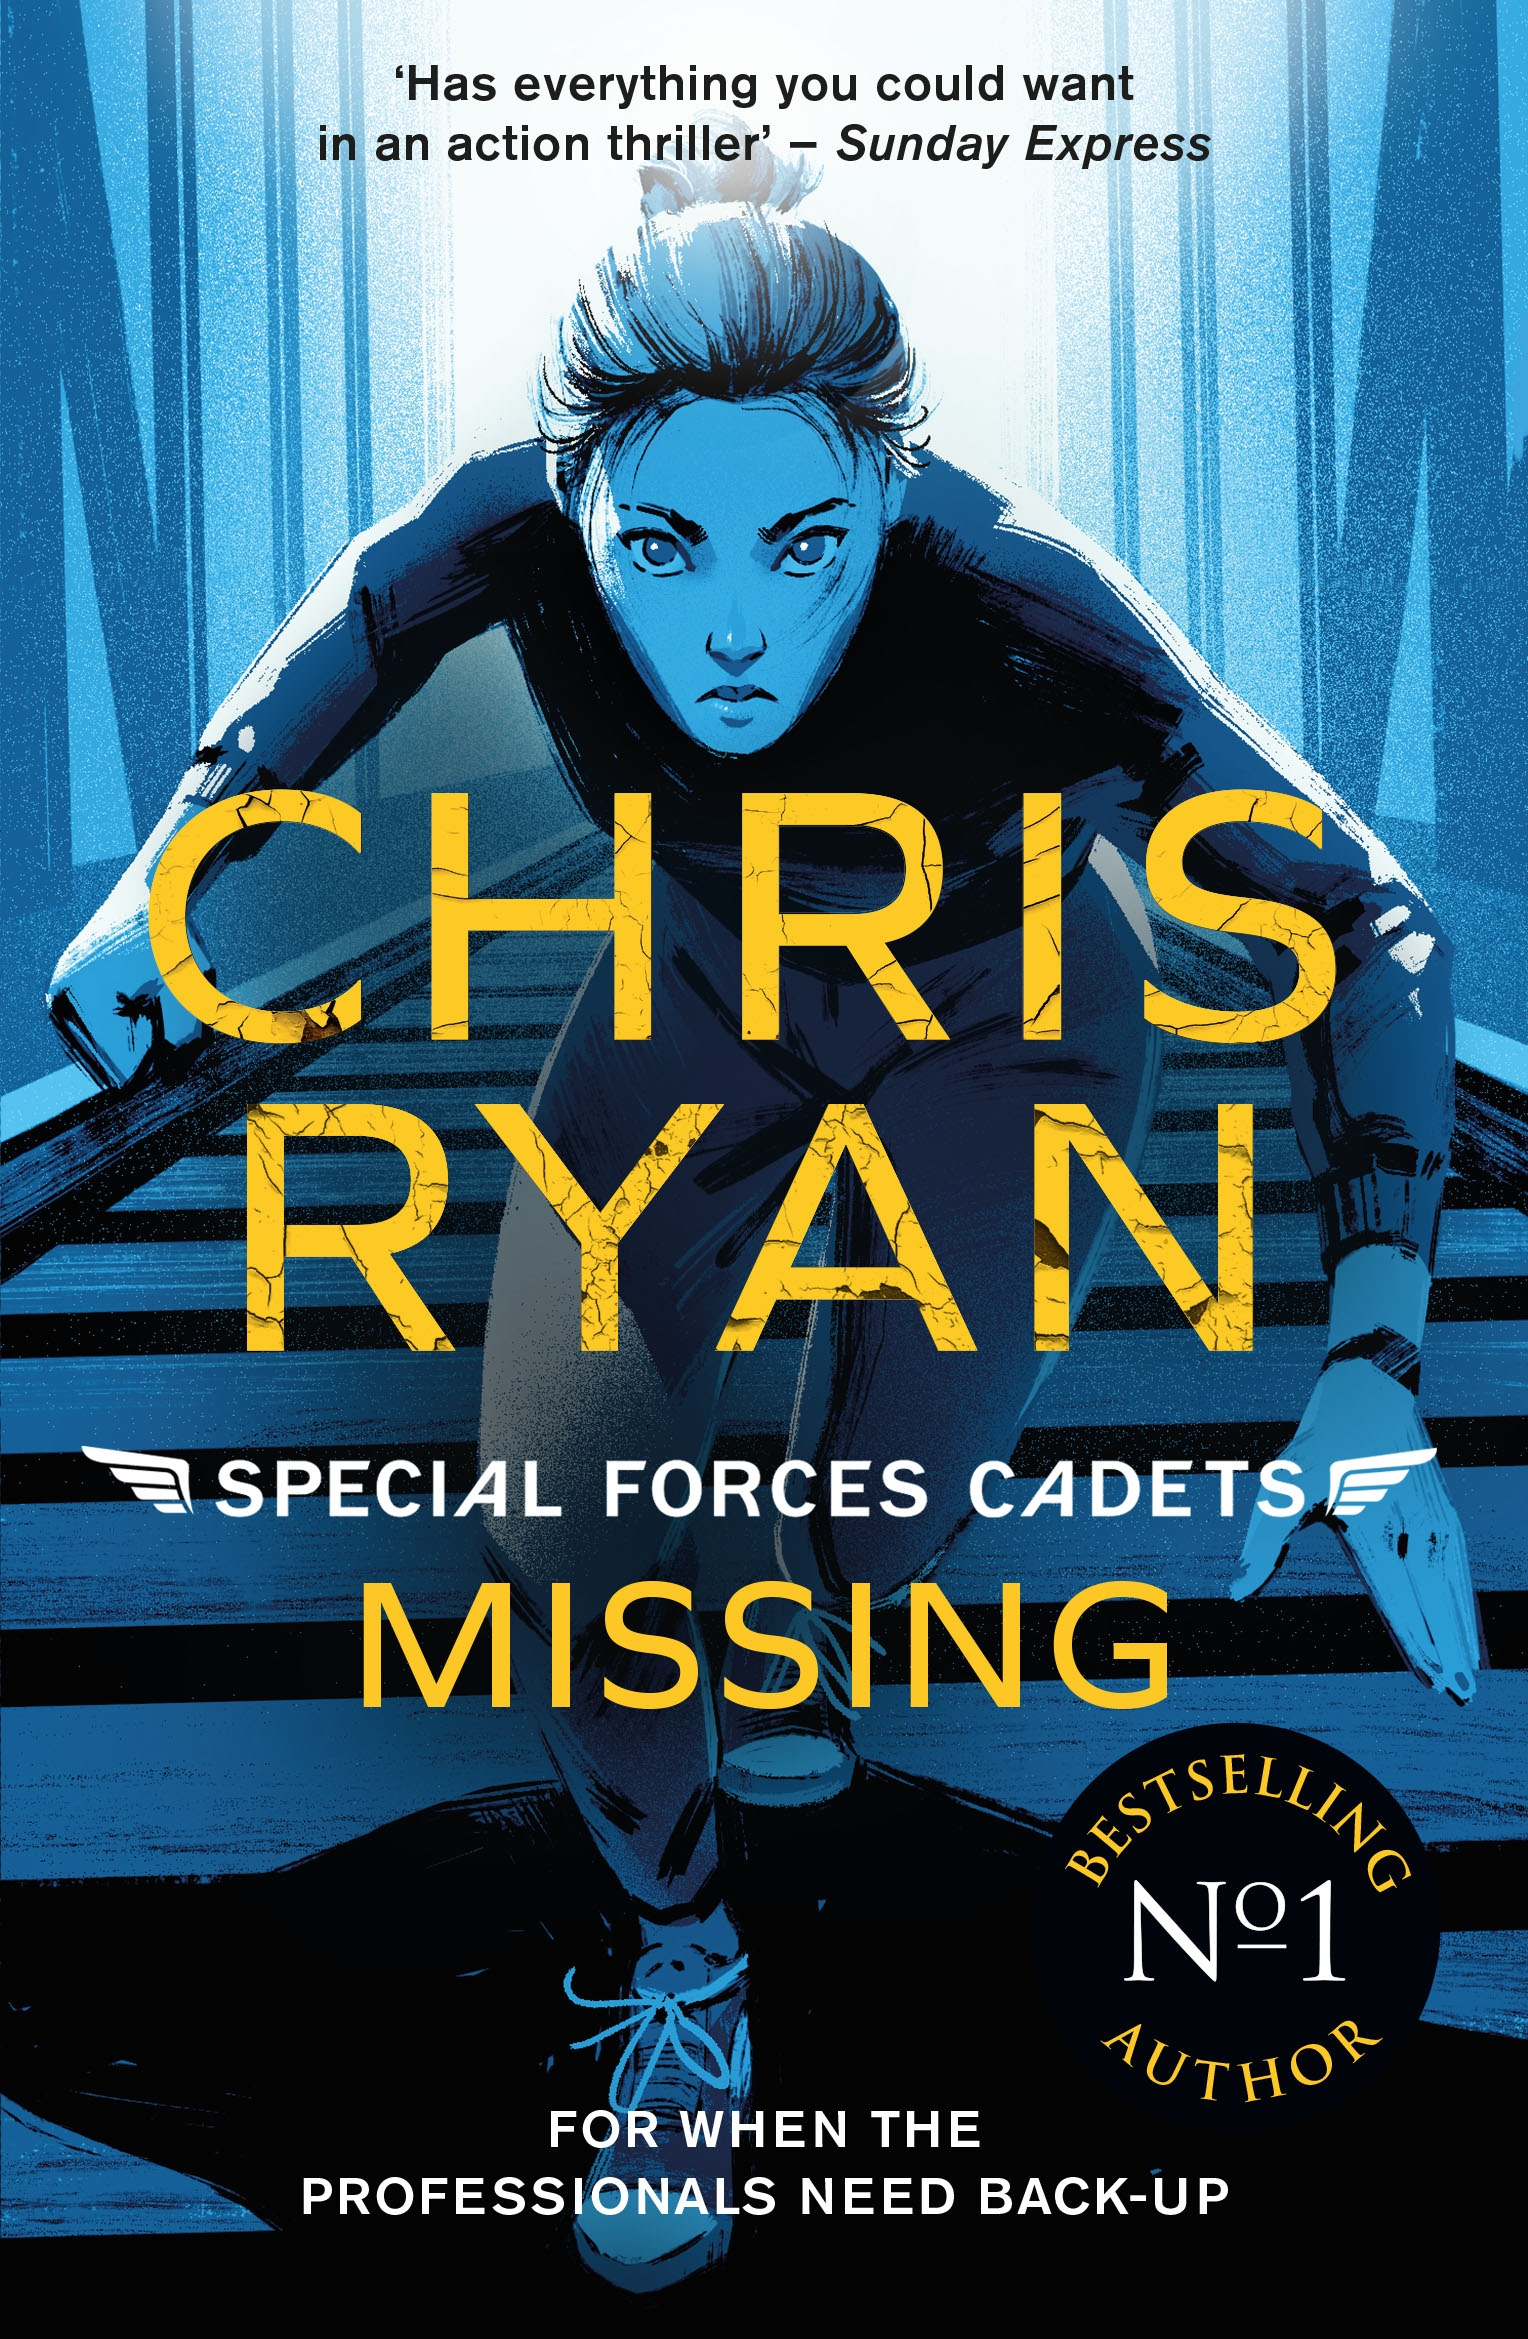 Special Forces Cadets 2: Missing by Chris Ryan